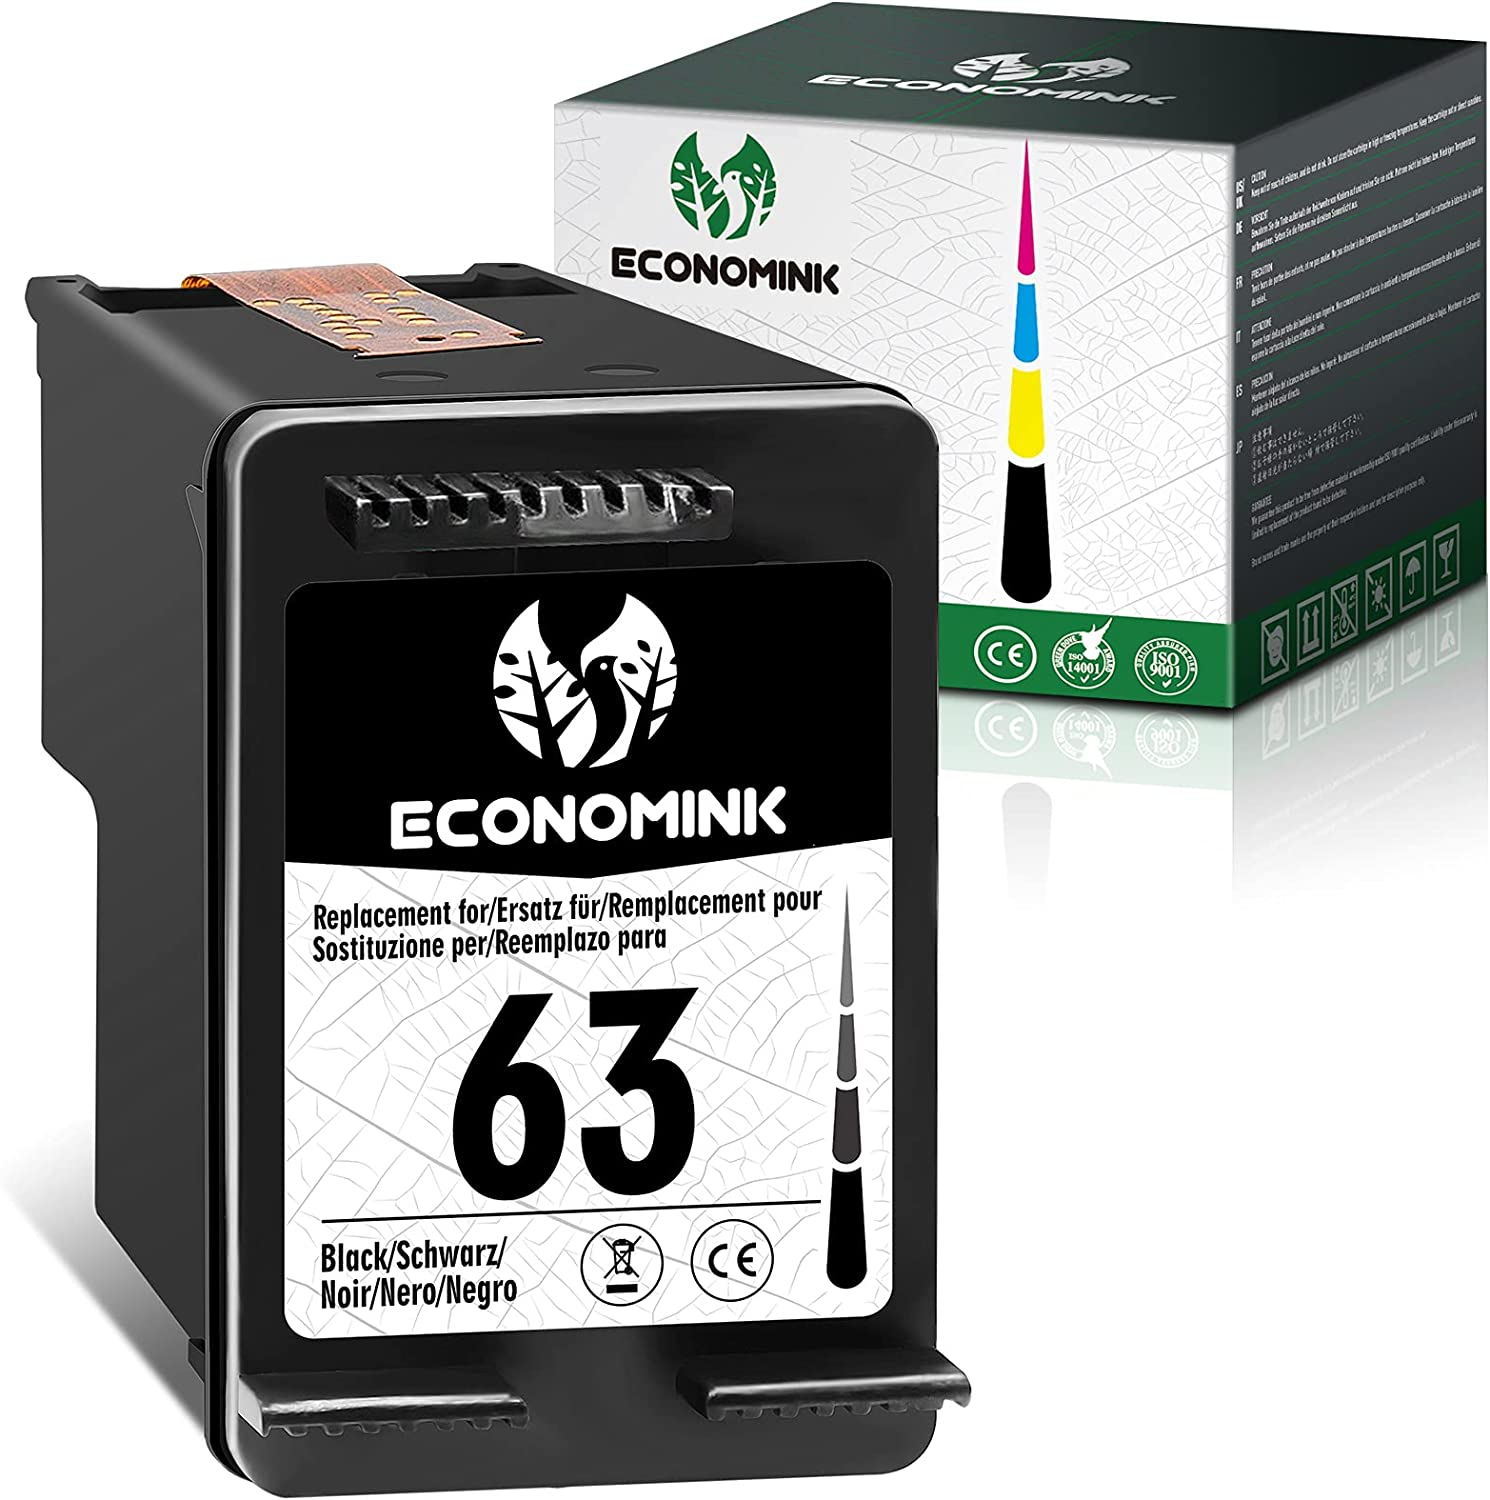 Economink Remanufactured Ink Cartridges Replacement for HP 63 Black High Yield Work with Envy 4520 3634 OfficeJet 3830 5252 4650 5258 4655 4652 5255 DeskJet 3636 1111 3630 1112 3637 3632 (1 Pack)